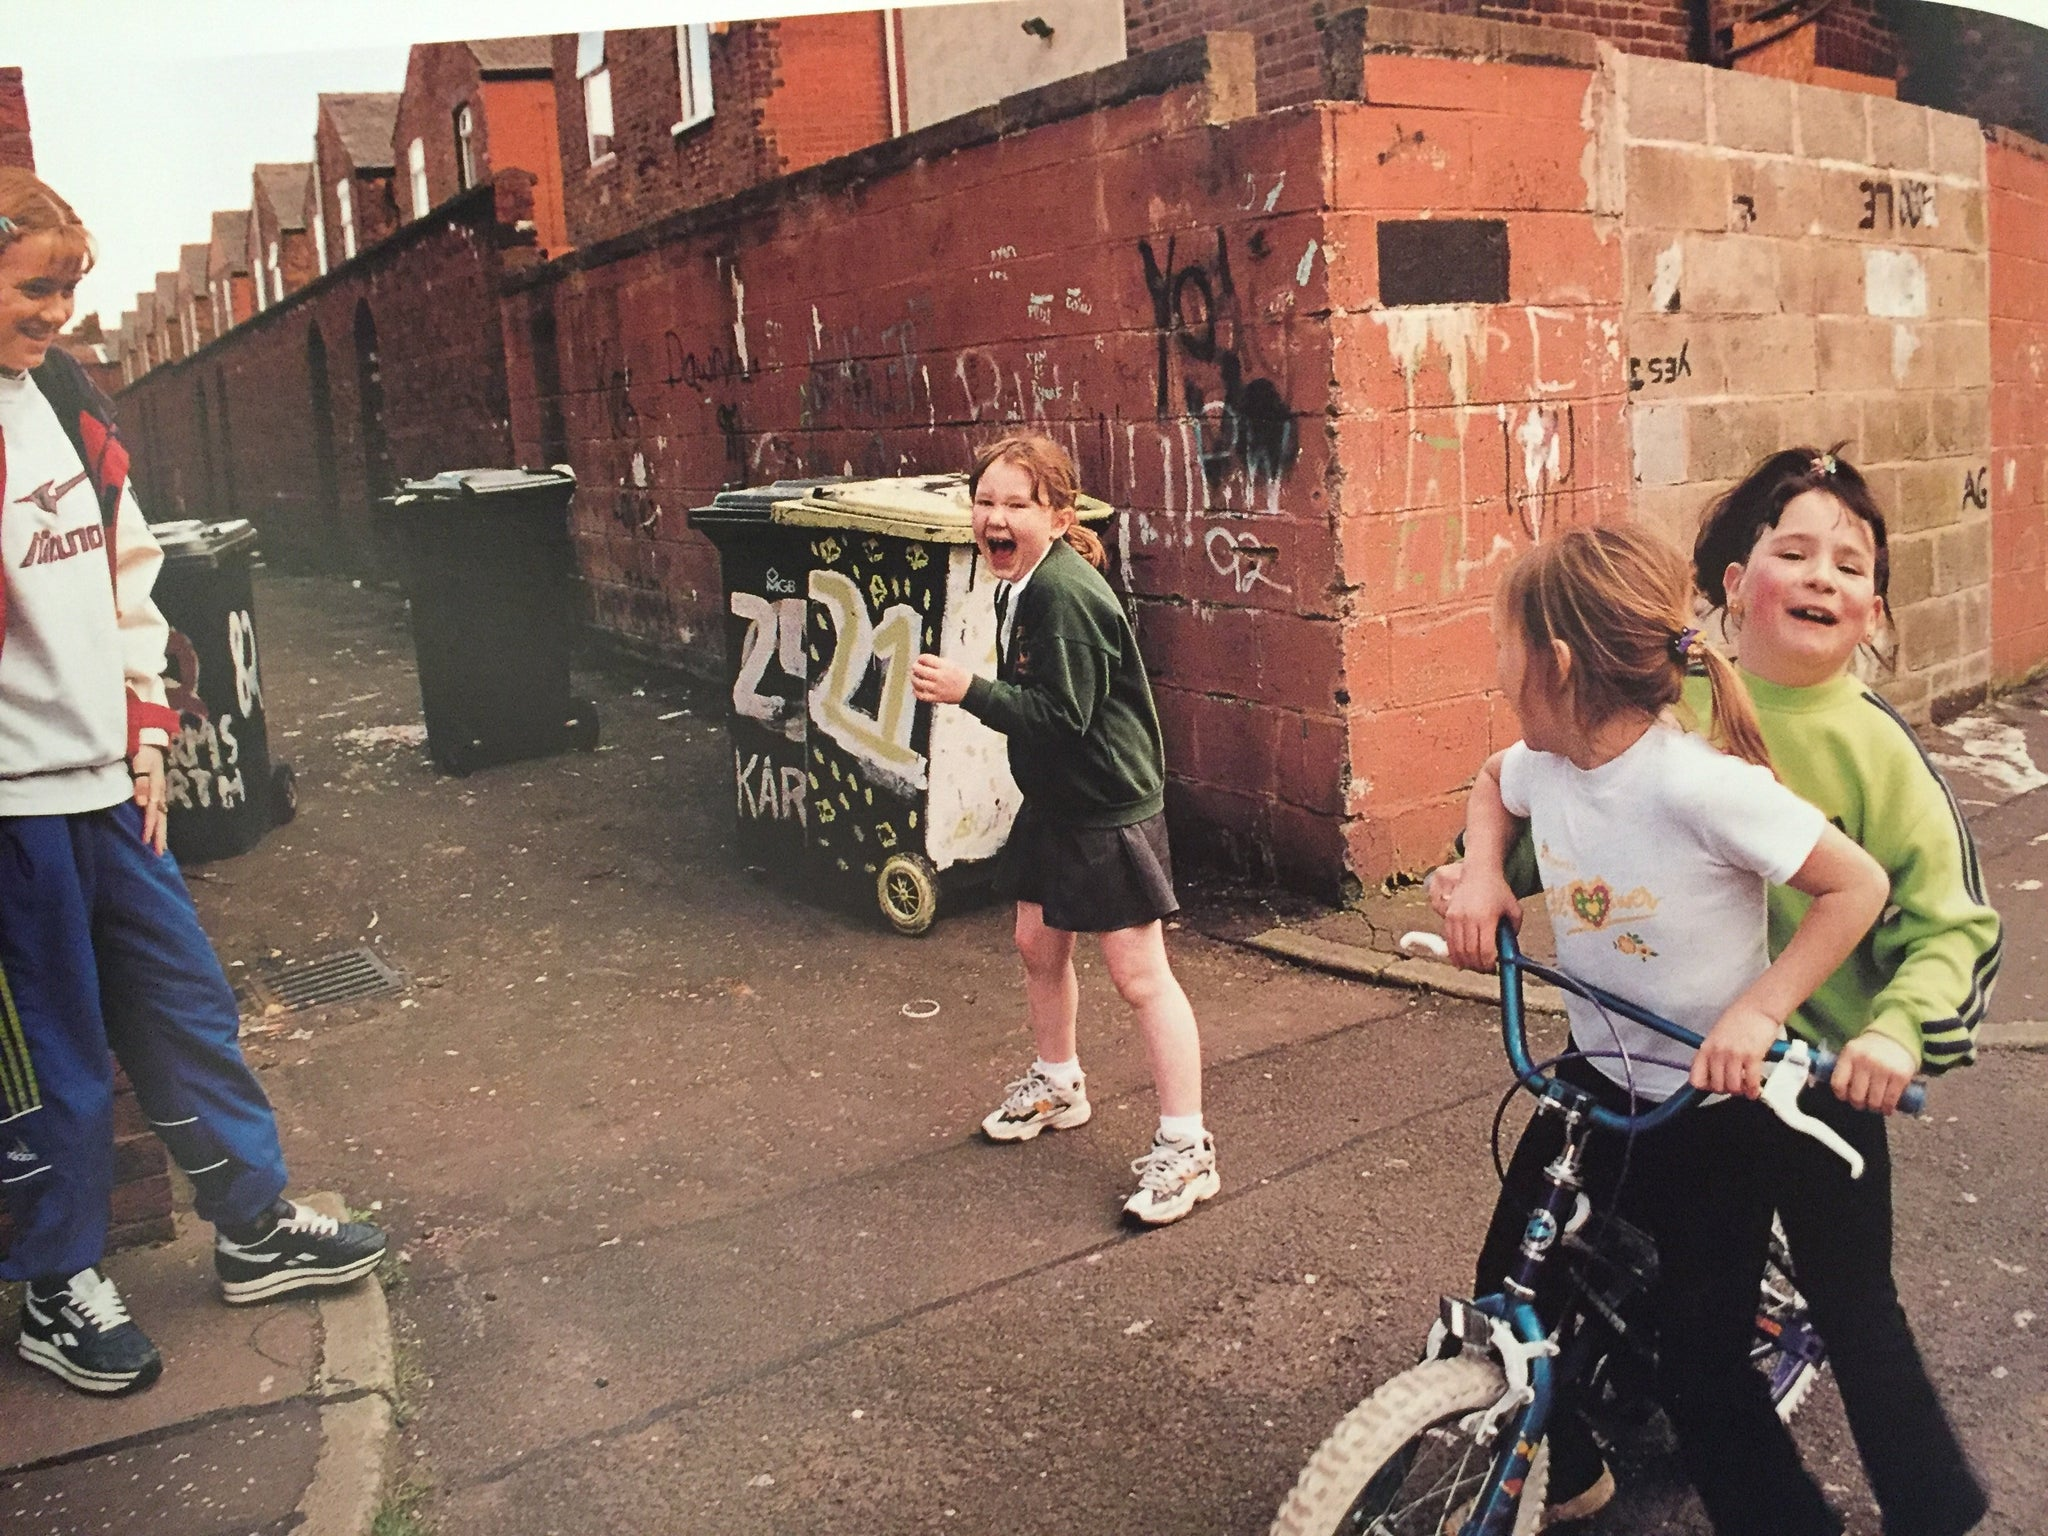 Shirley Baker, Streets & Spaces: Urban Photography - Claire de Rouen Books